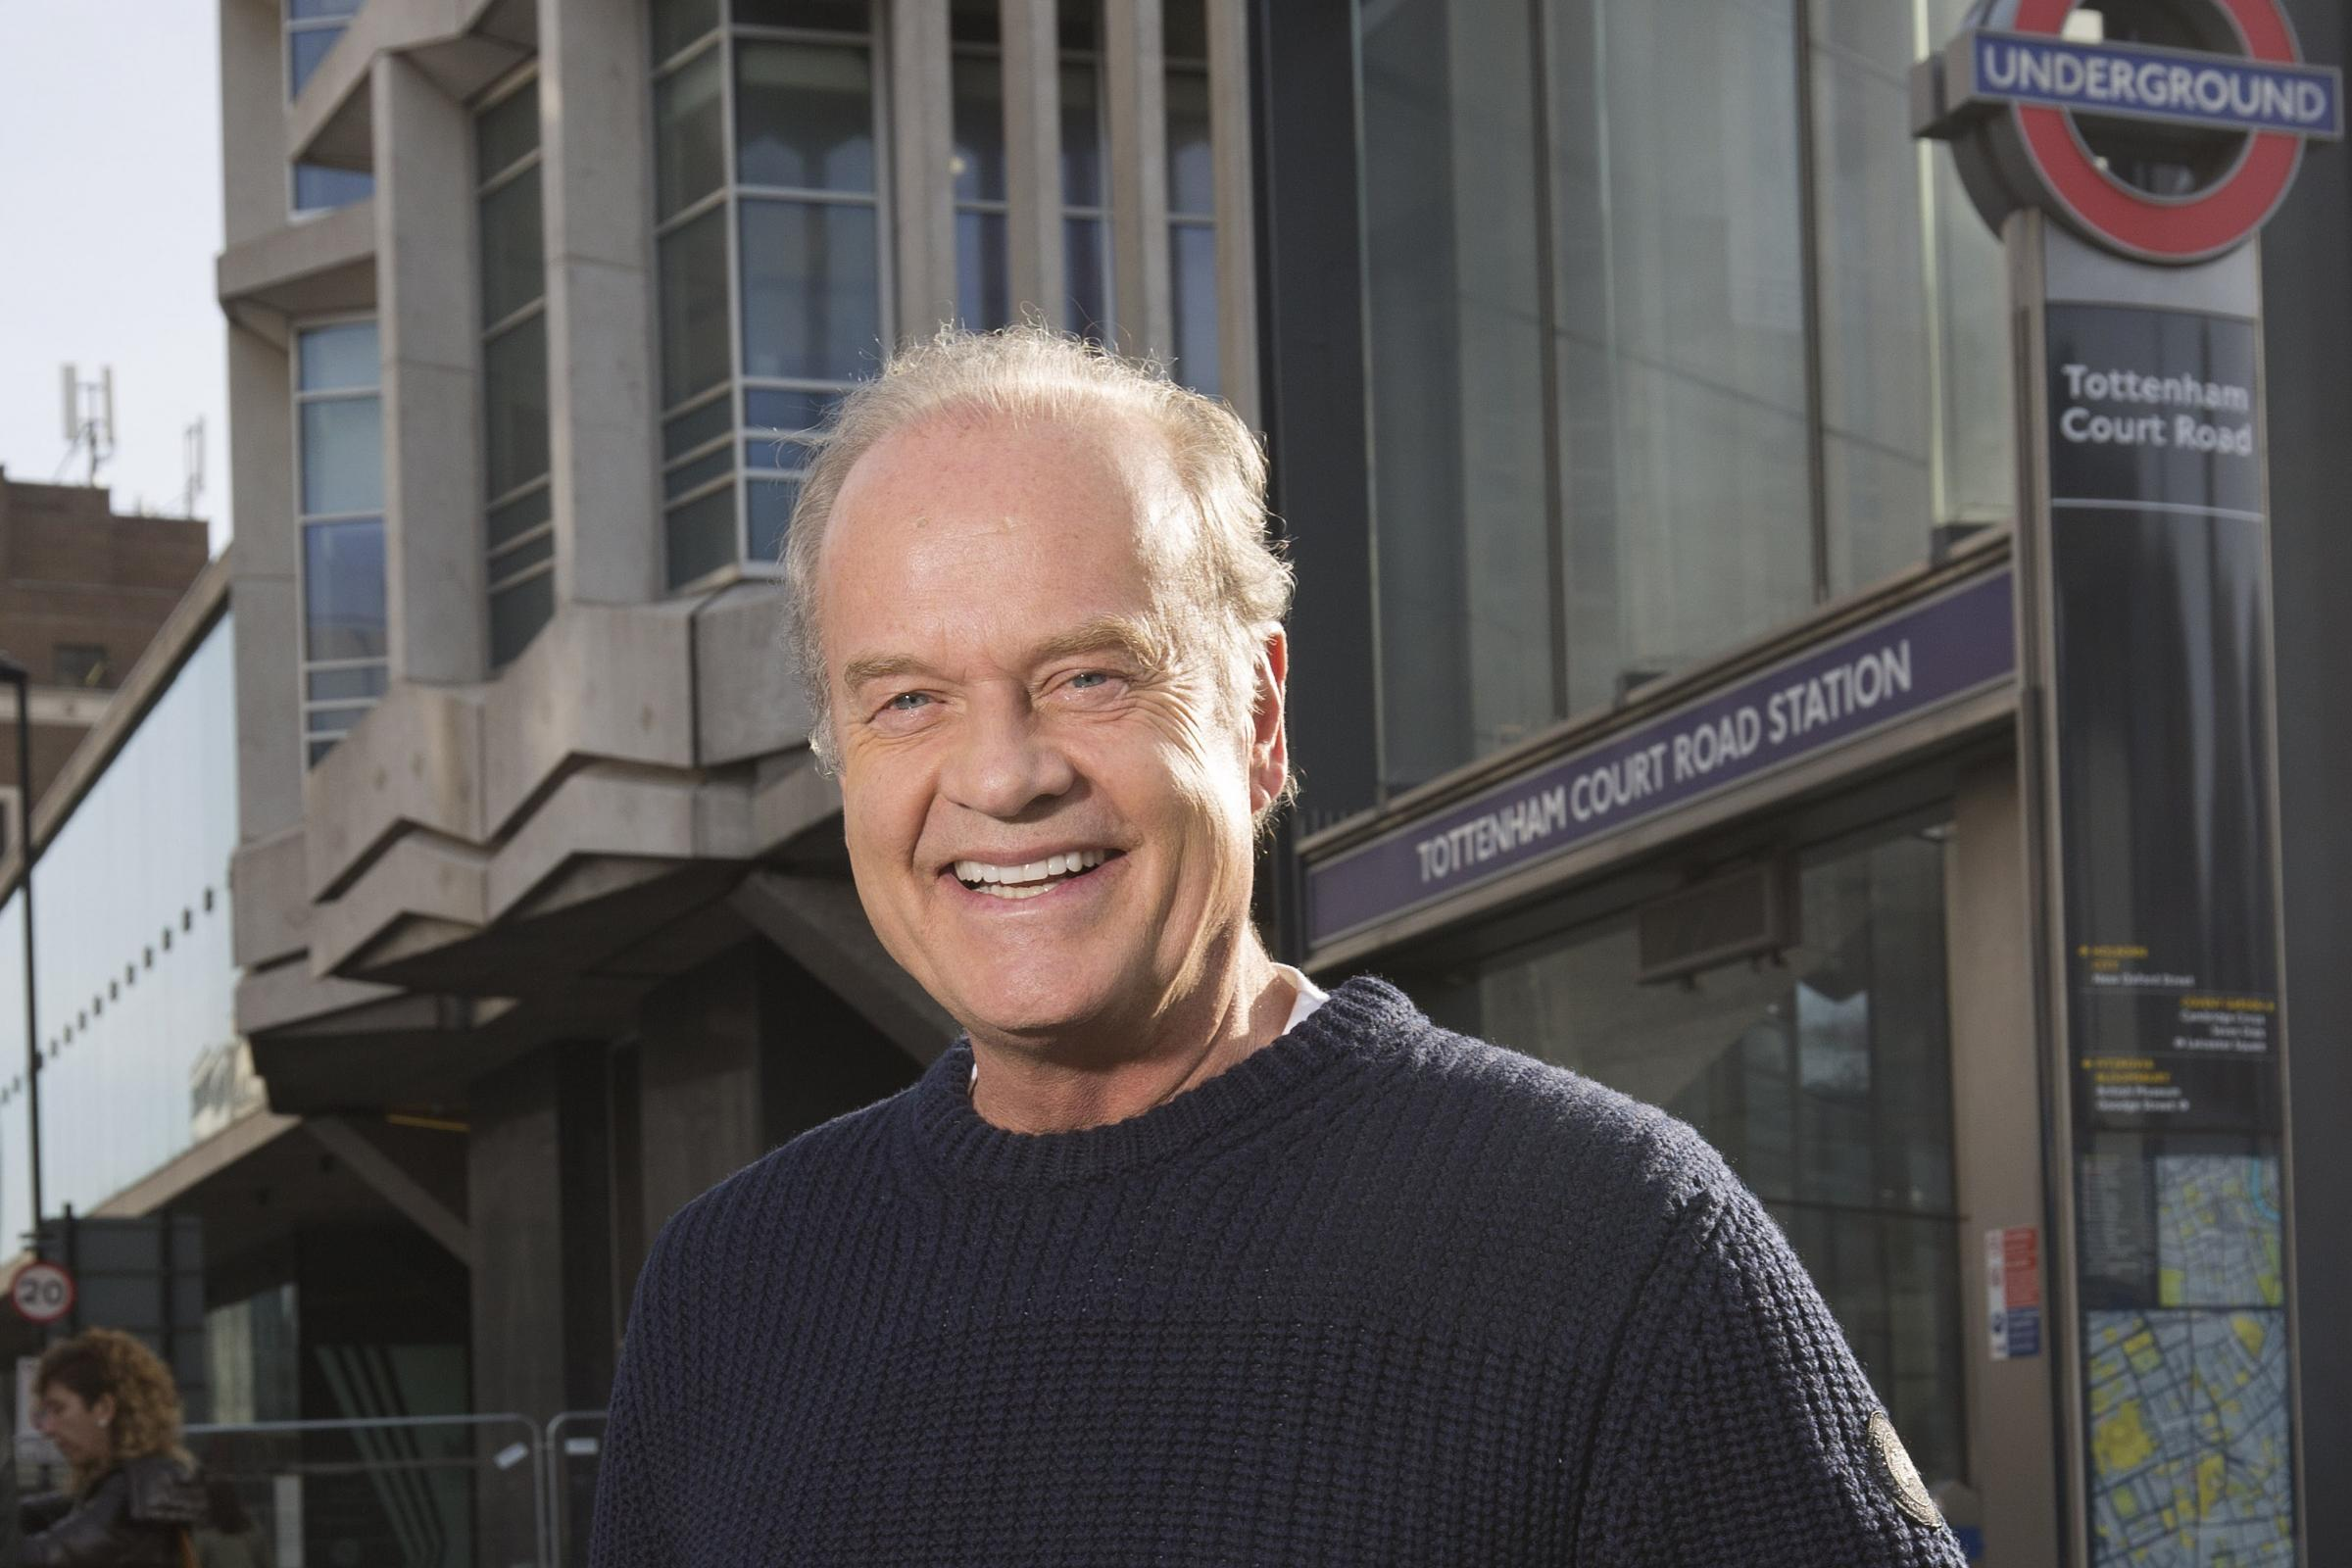 Kelsey Grammer delivered special tannoy announcements to commuters at Tottenham Court Road Station